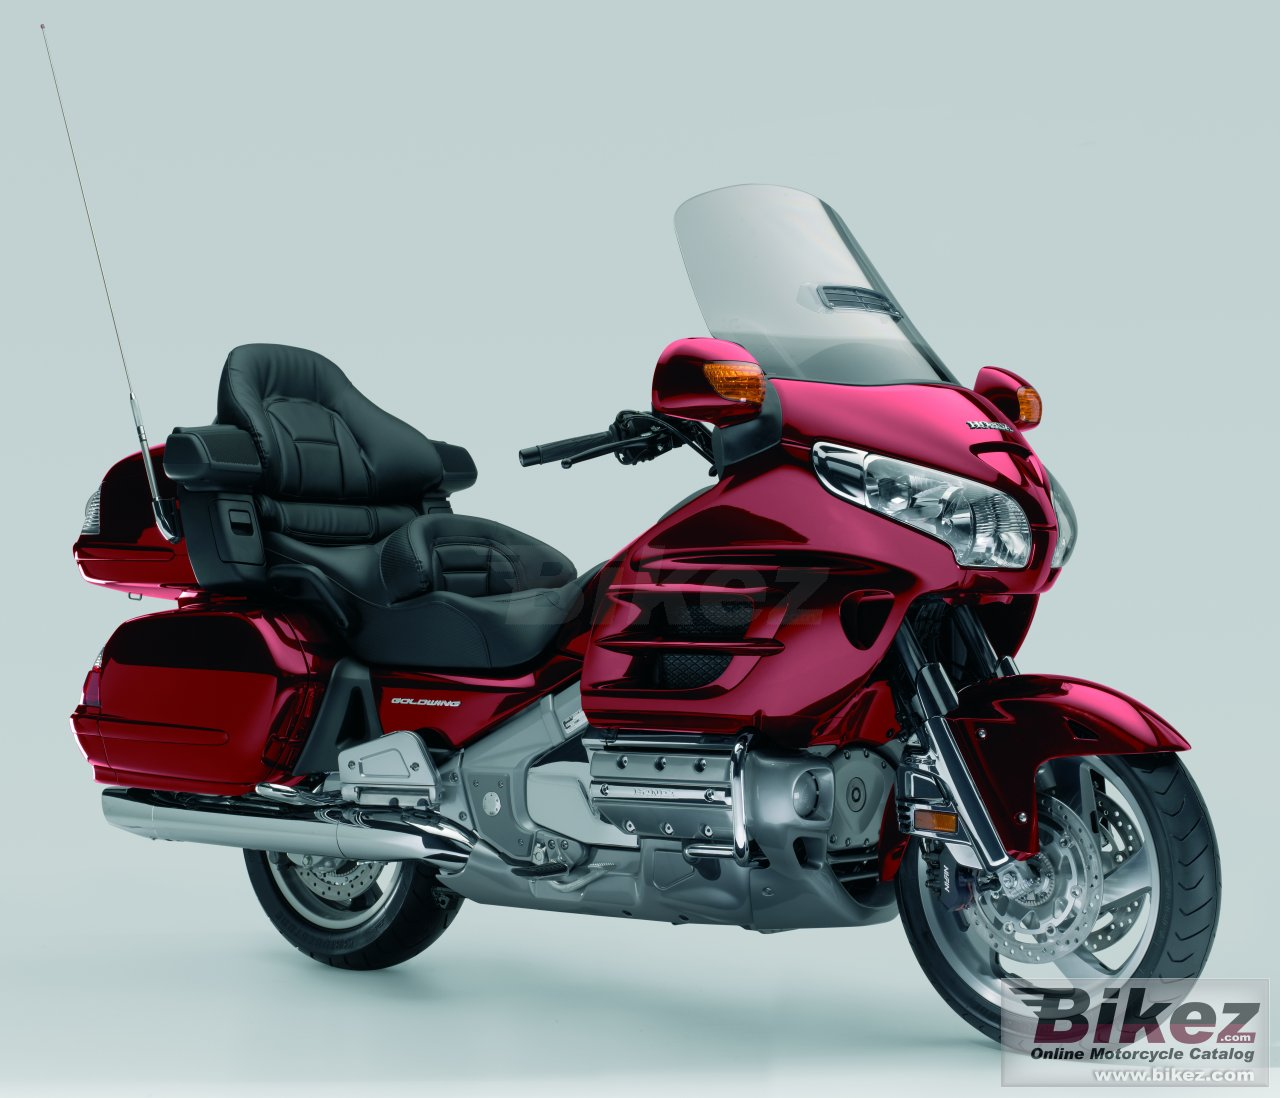 Big Honda gold wing audio-comfort-navi-abs picture and wallpaper from Bikez.com